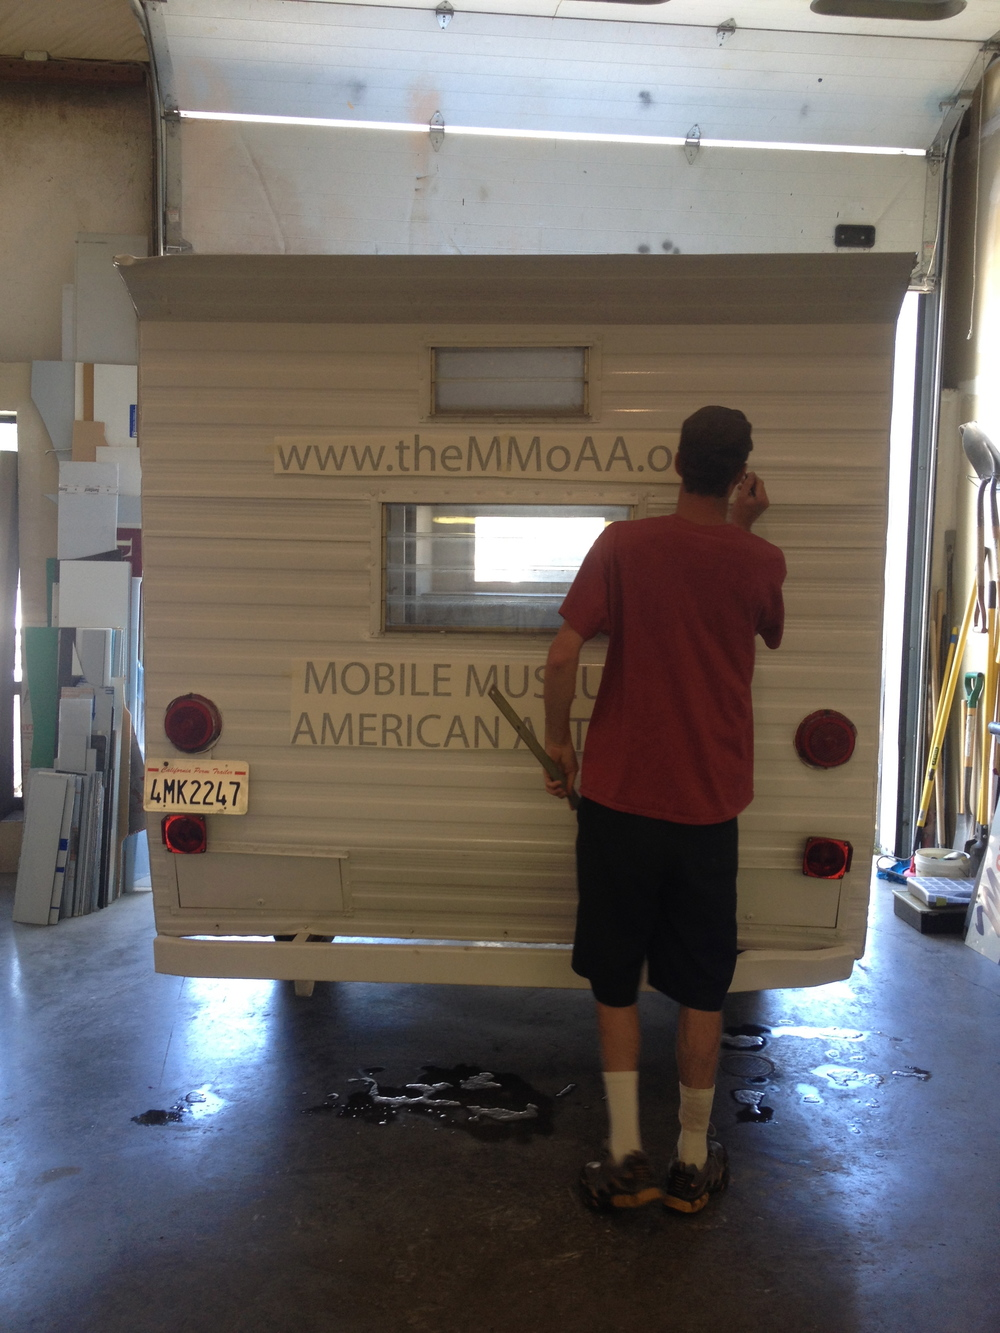 Artist and graphic designer Matt installs vinyl lettering on MMoAA at Xtreme Graphics in Alamosa, Colorado.